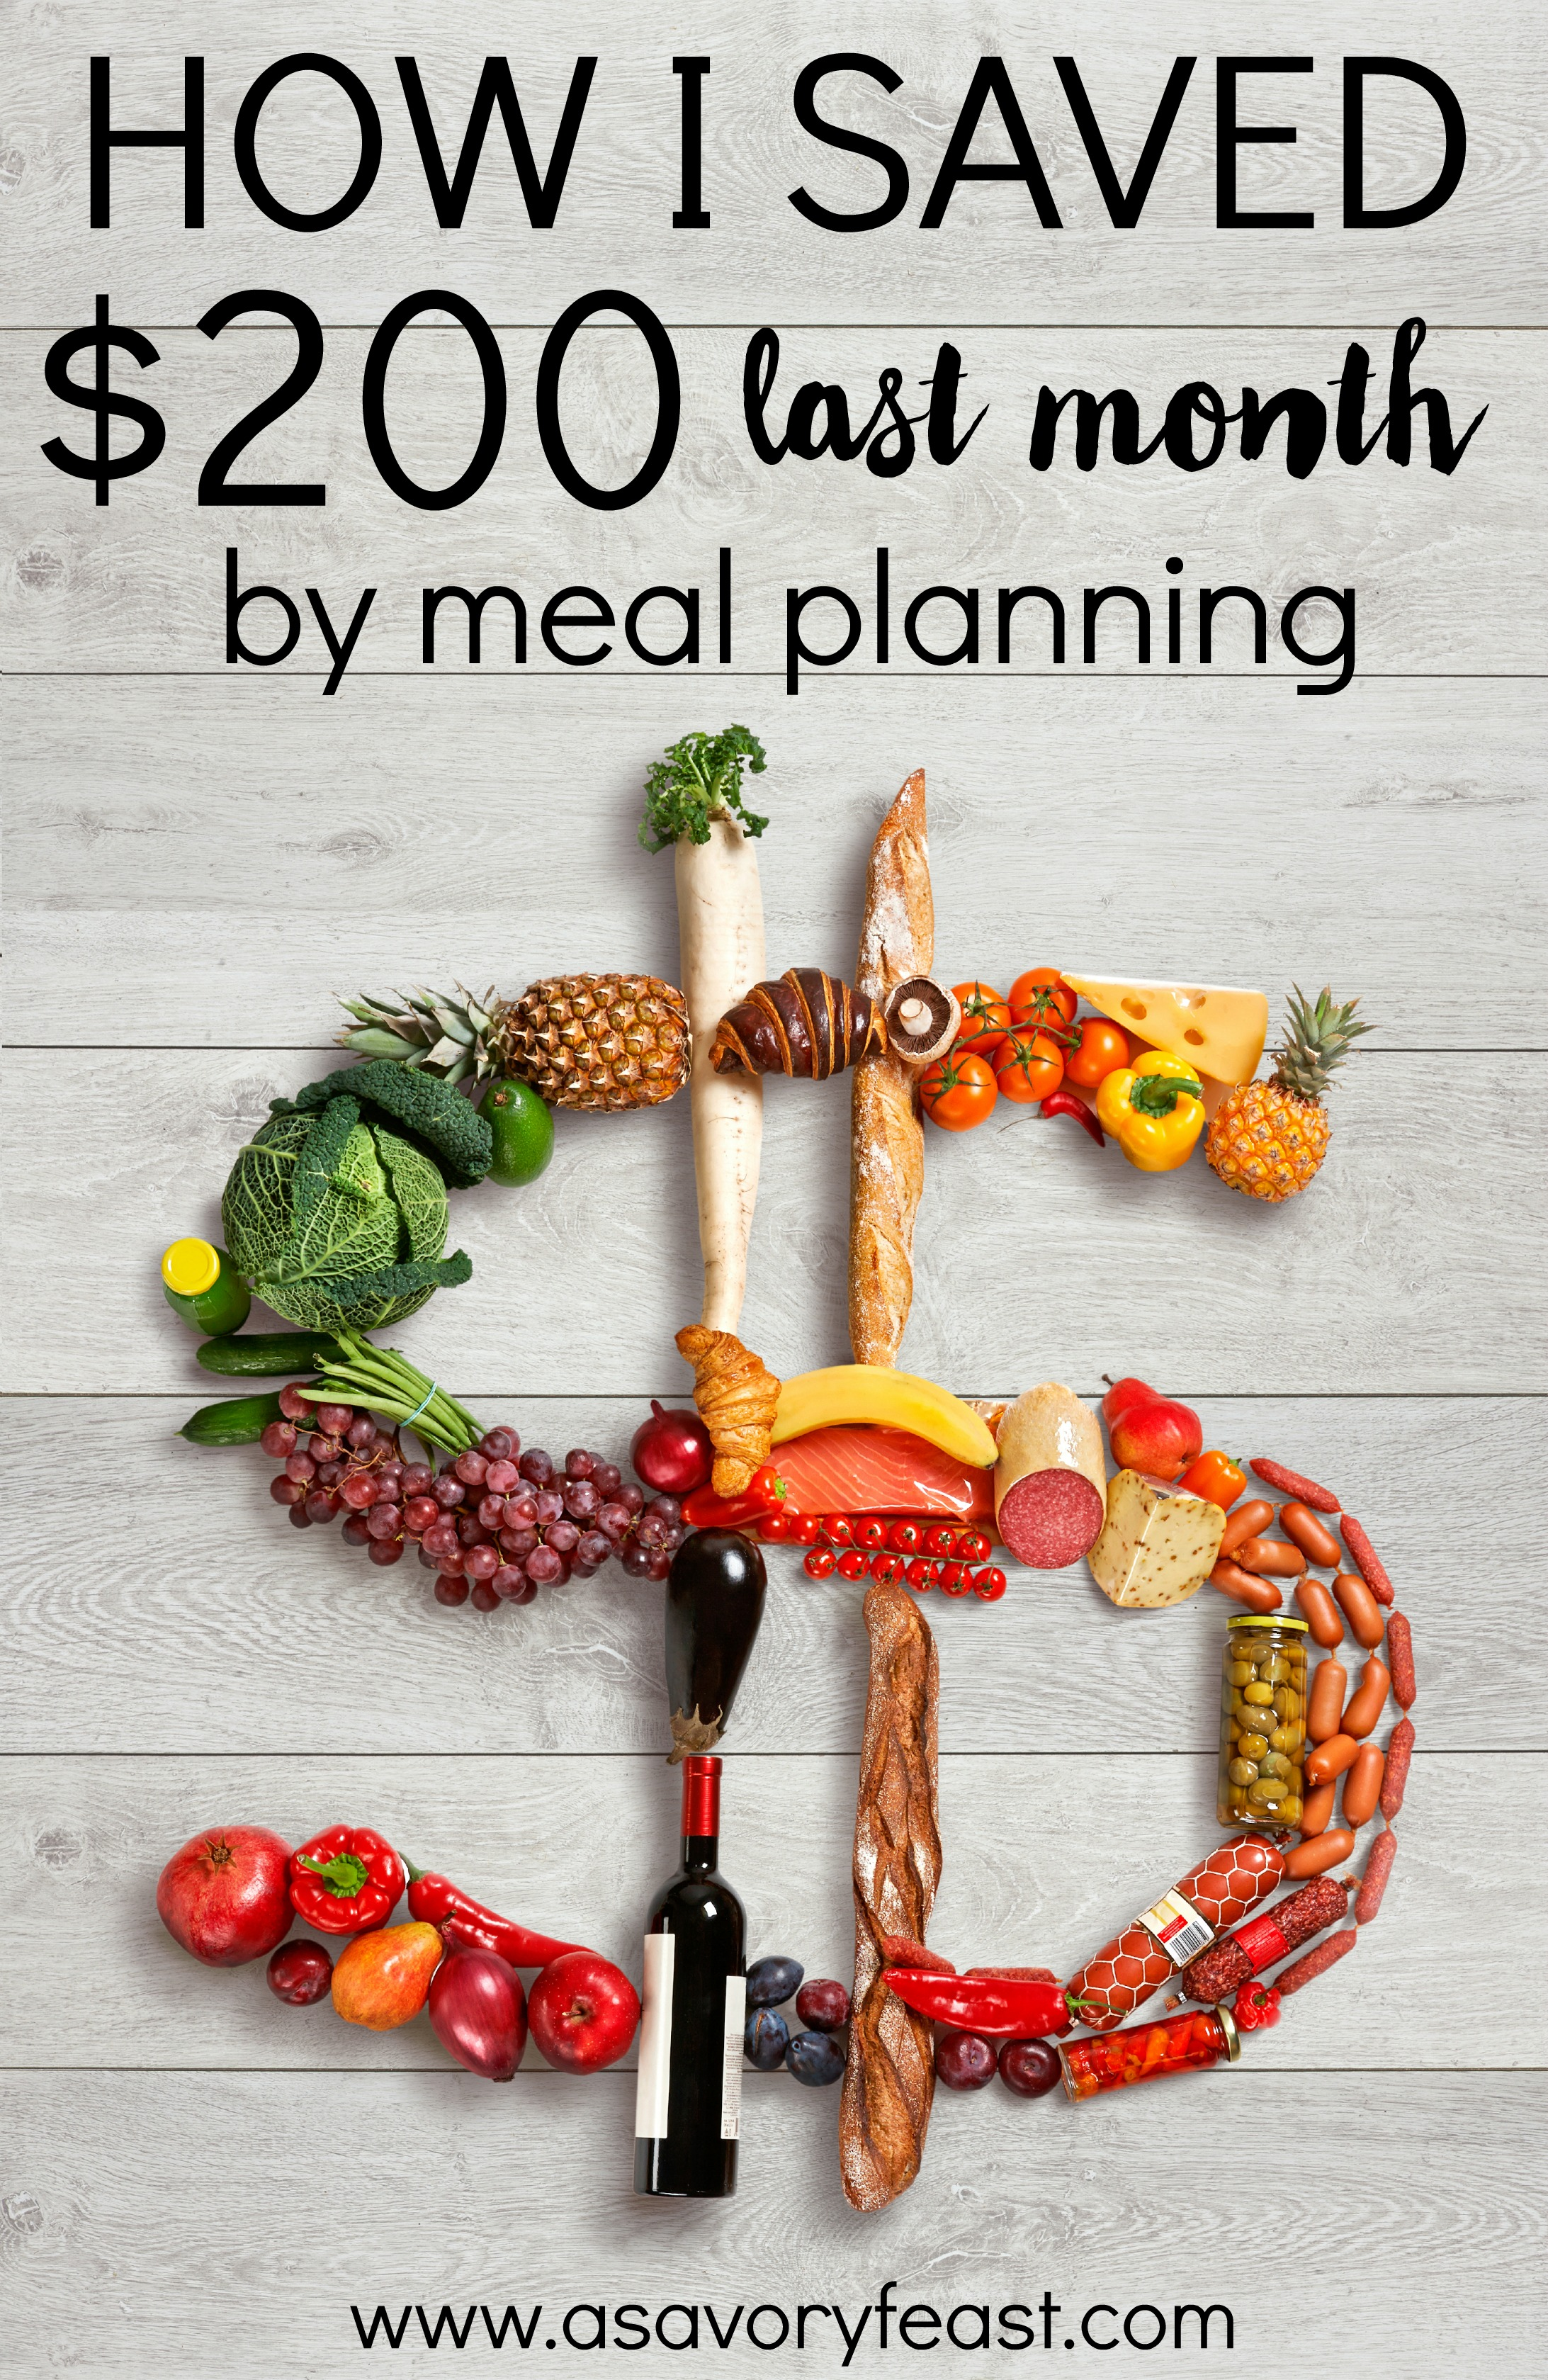 Last month I saved my family $200 by meal planning! Get tips on how to get started with meal planning and learn how it can save you big time!